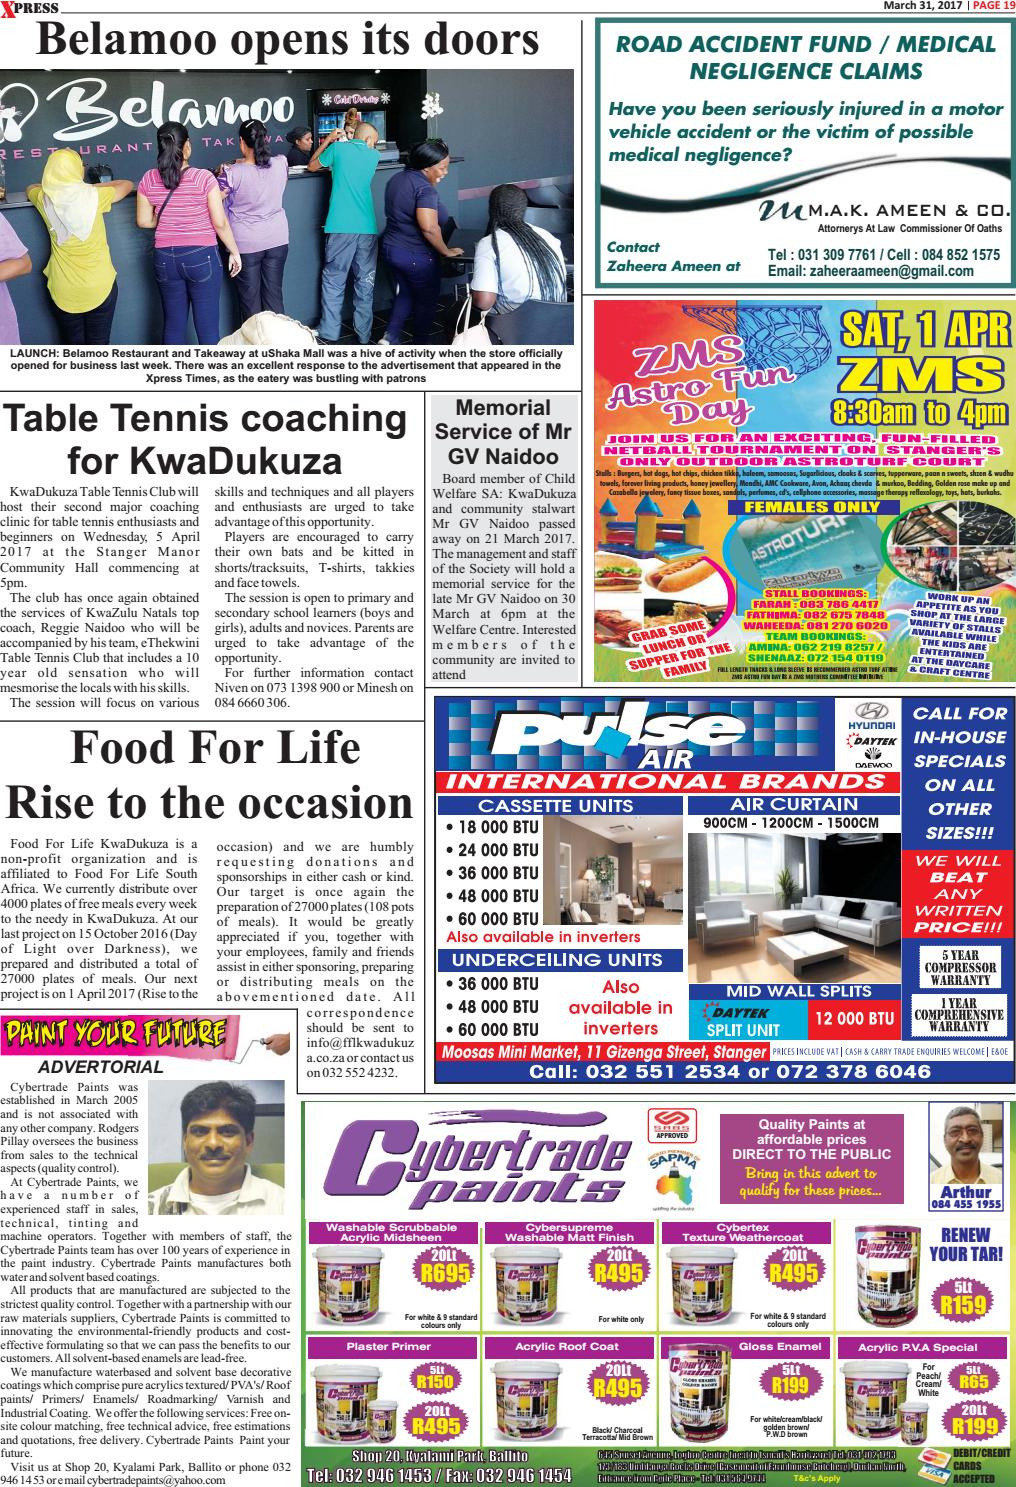 Xpress times 31 03 2017 by Ahmed Desai - issuu